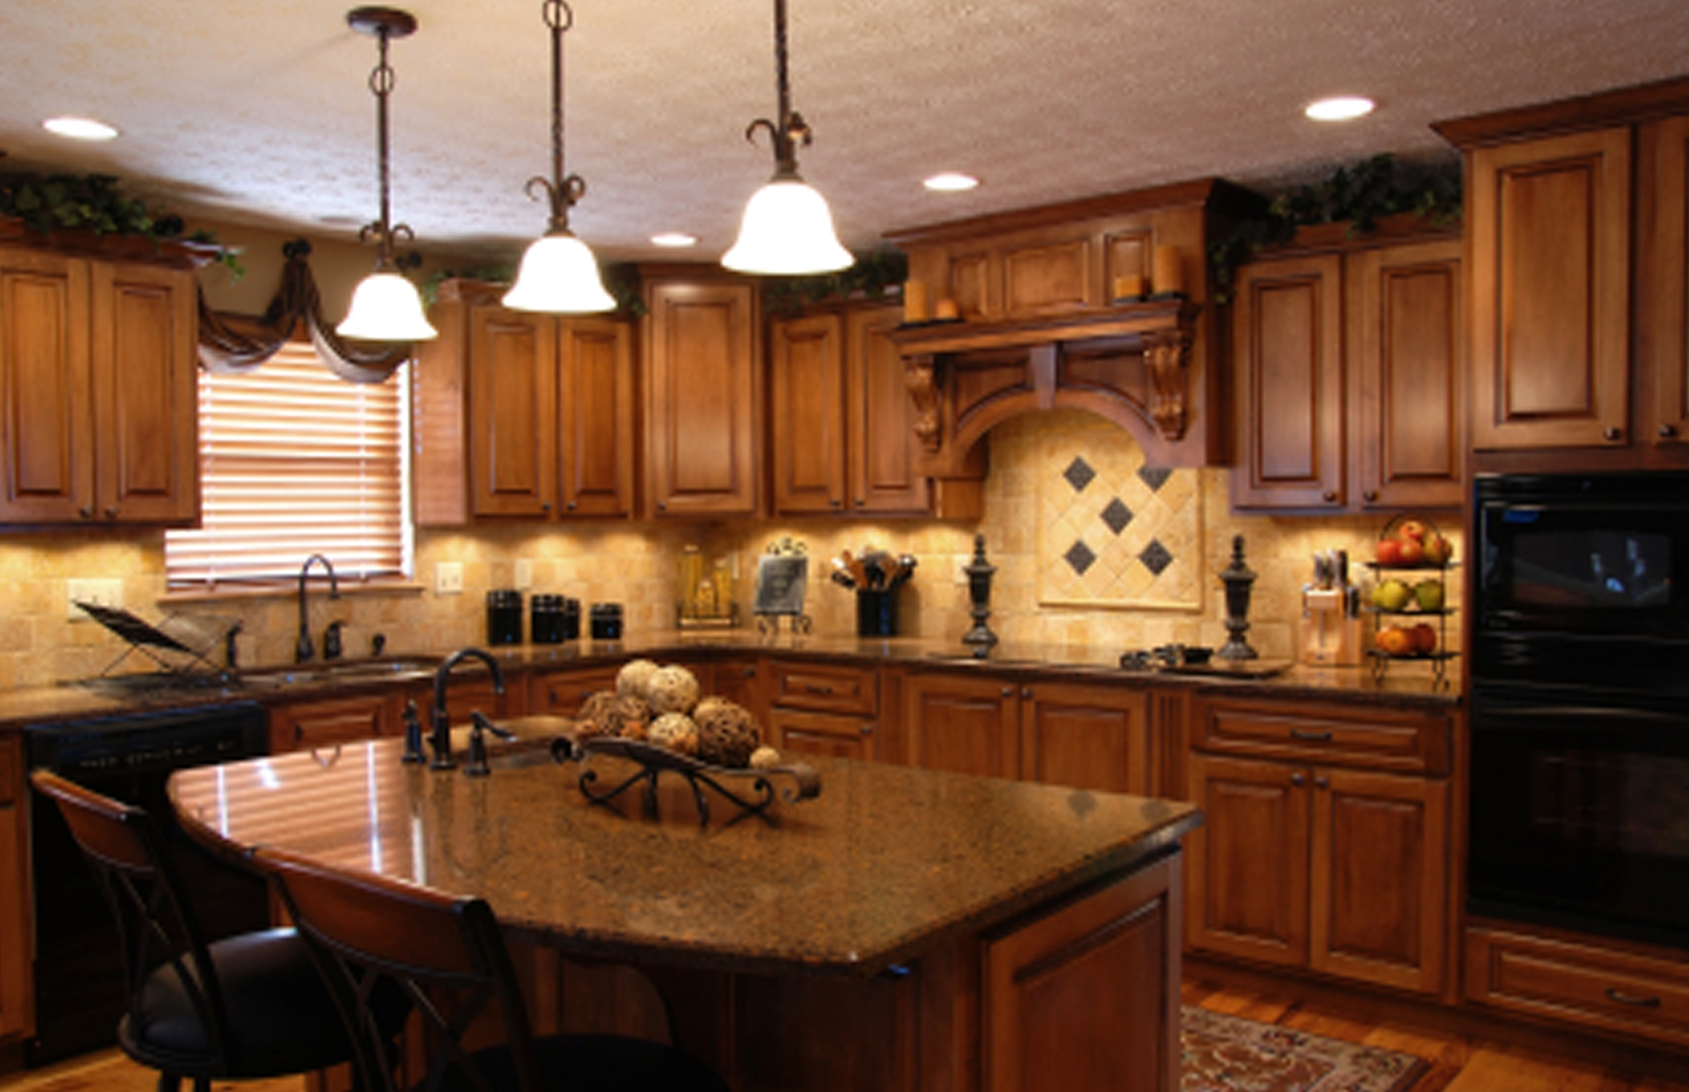 Pictures Of Decorated Kitchen Islands